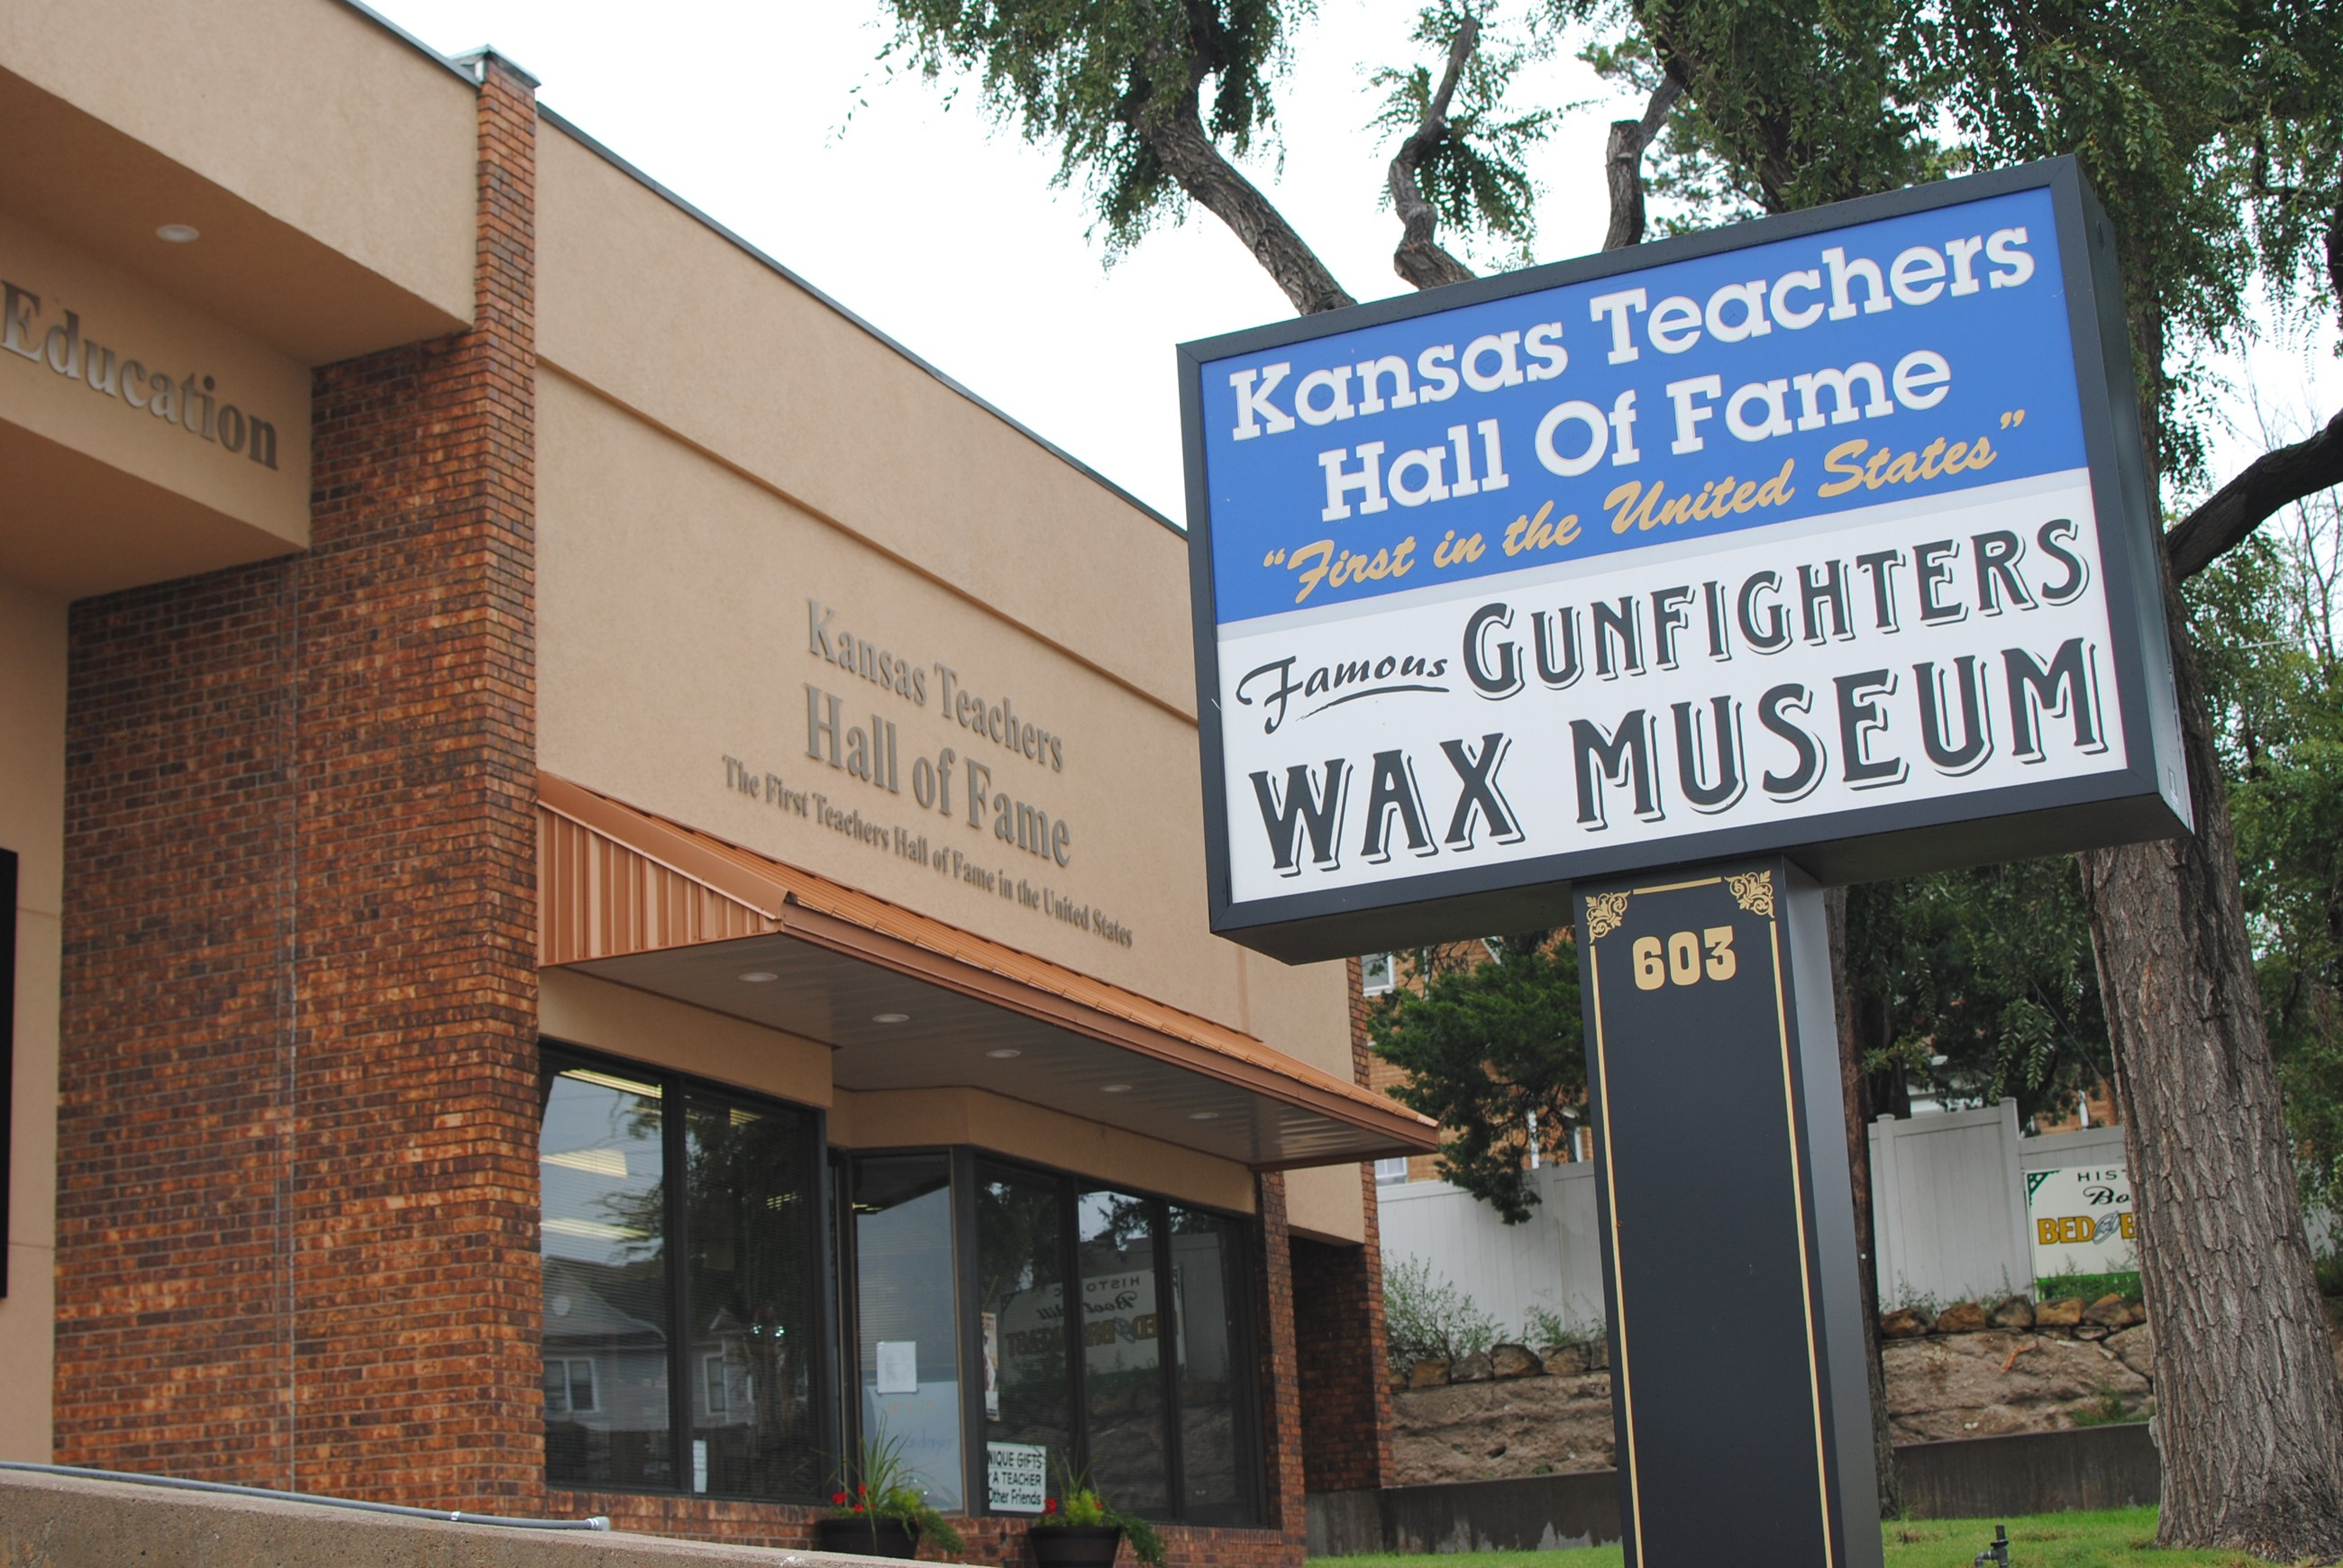 Kansas Teachers Hall of Fame Gunfighters Wax Museum sign